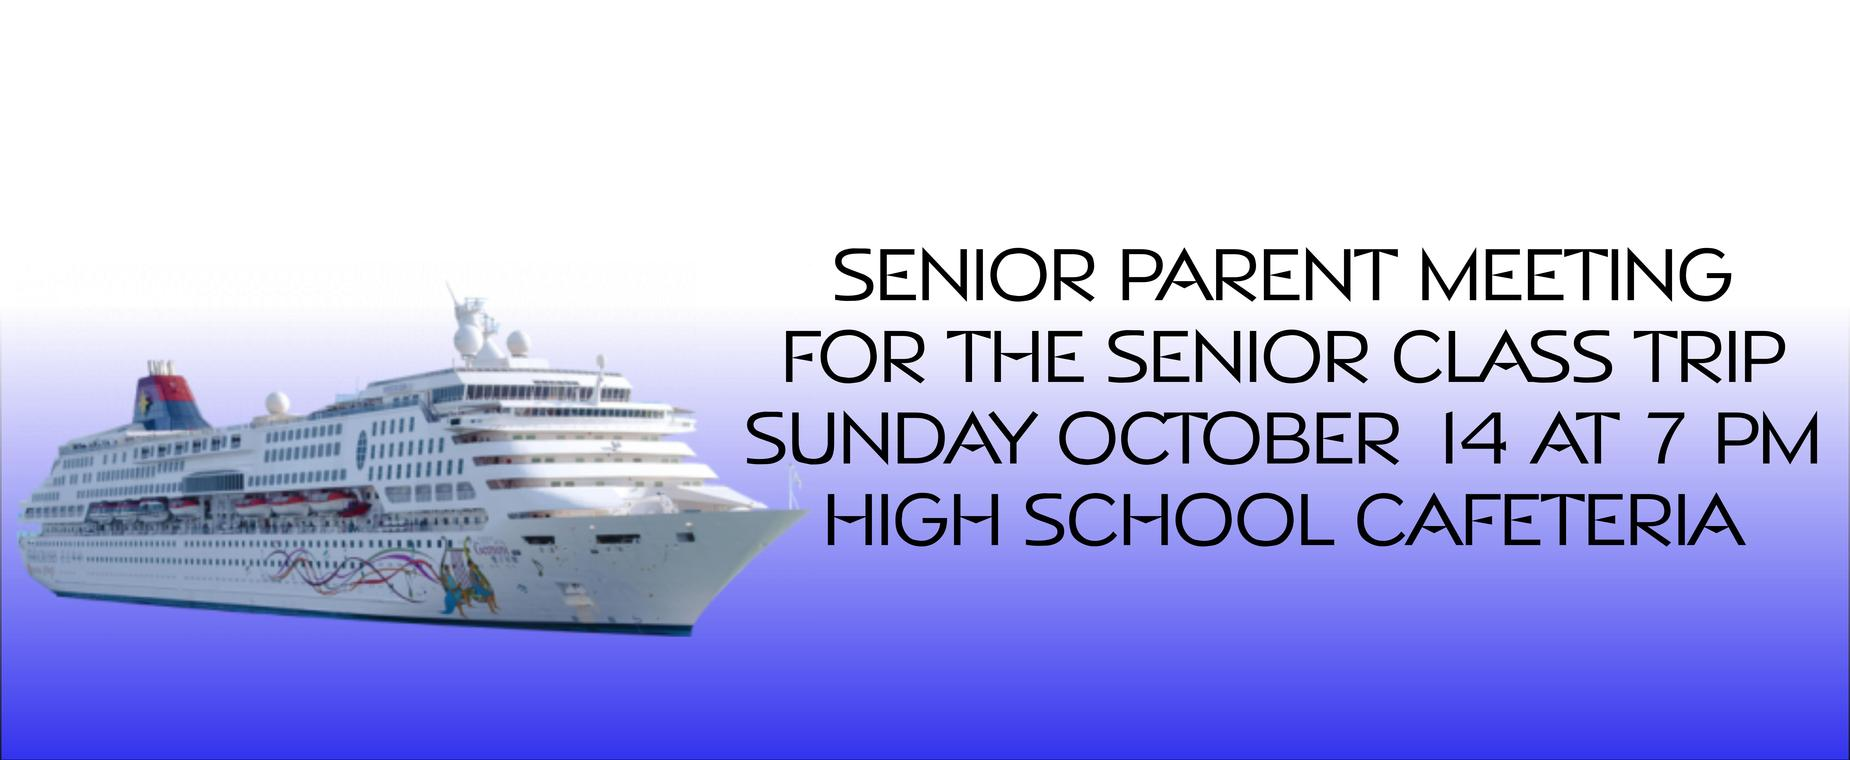 Senior parent meeting for senior class trip. October 14 at 7 in the cafeteria.